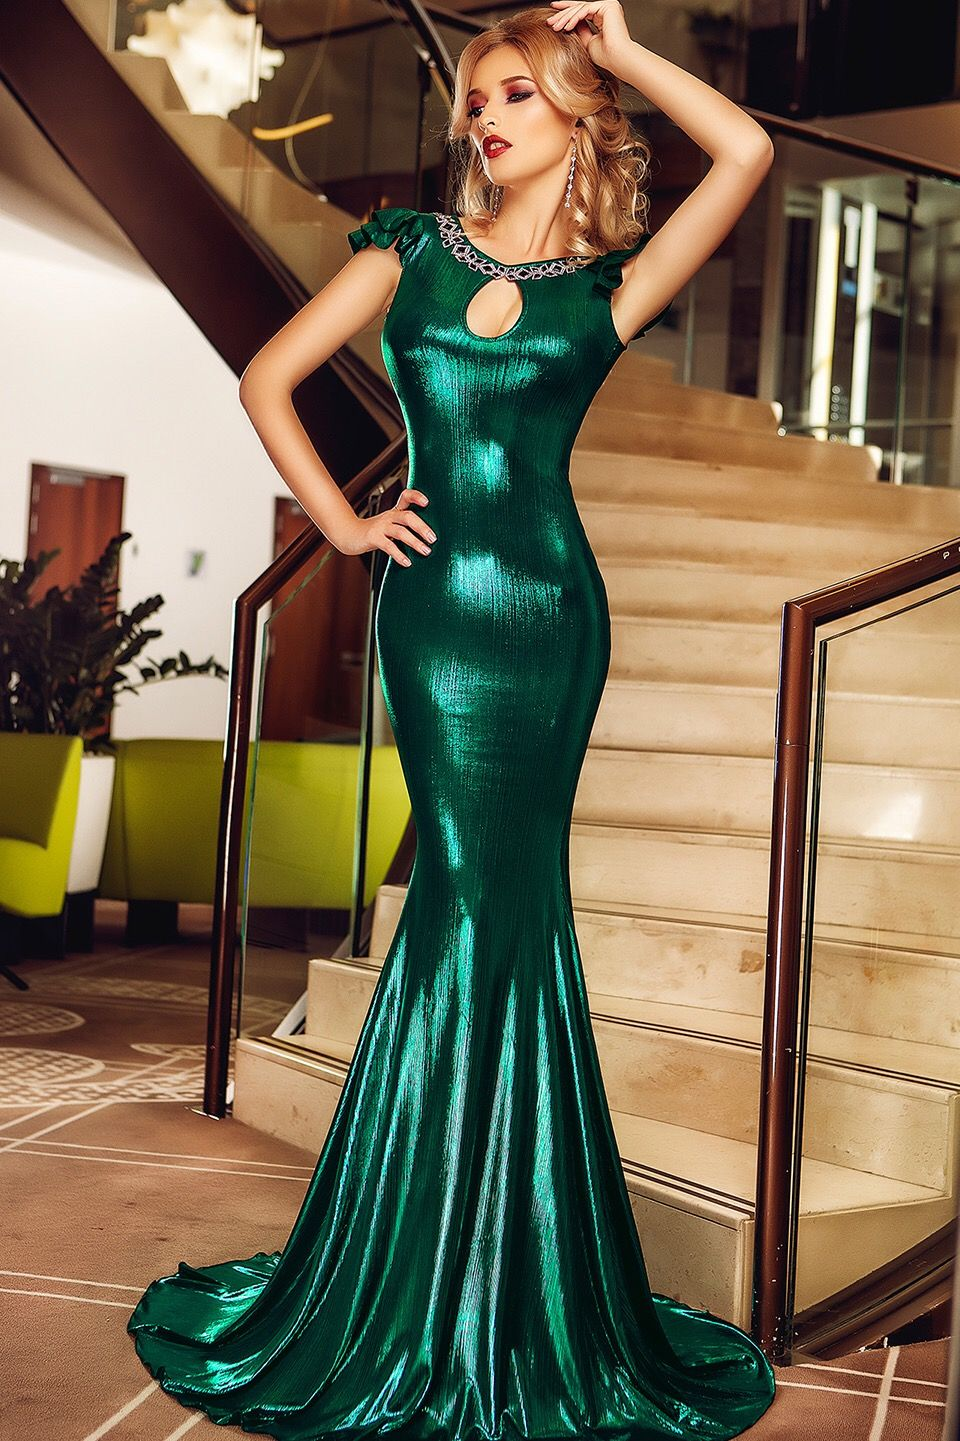 Pin by Александр Булгаков on Tight dress | Pinterest | Latex, Satin ...